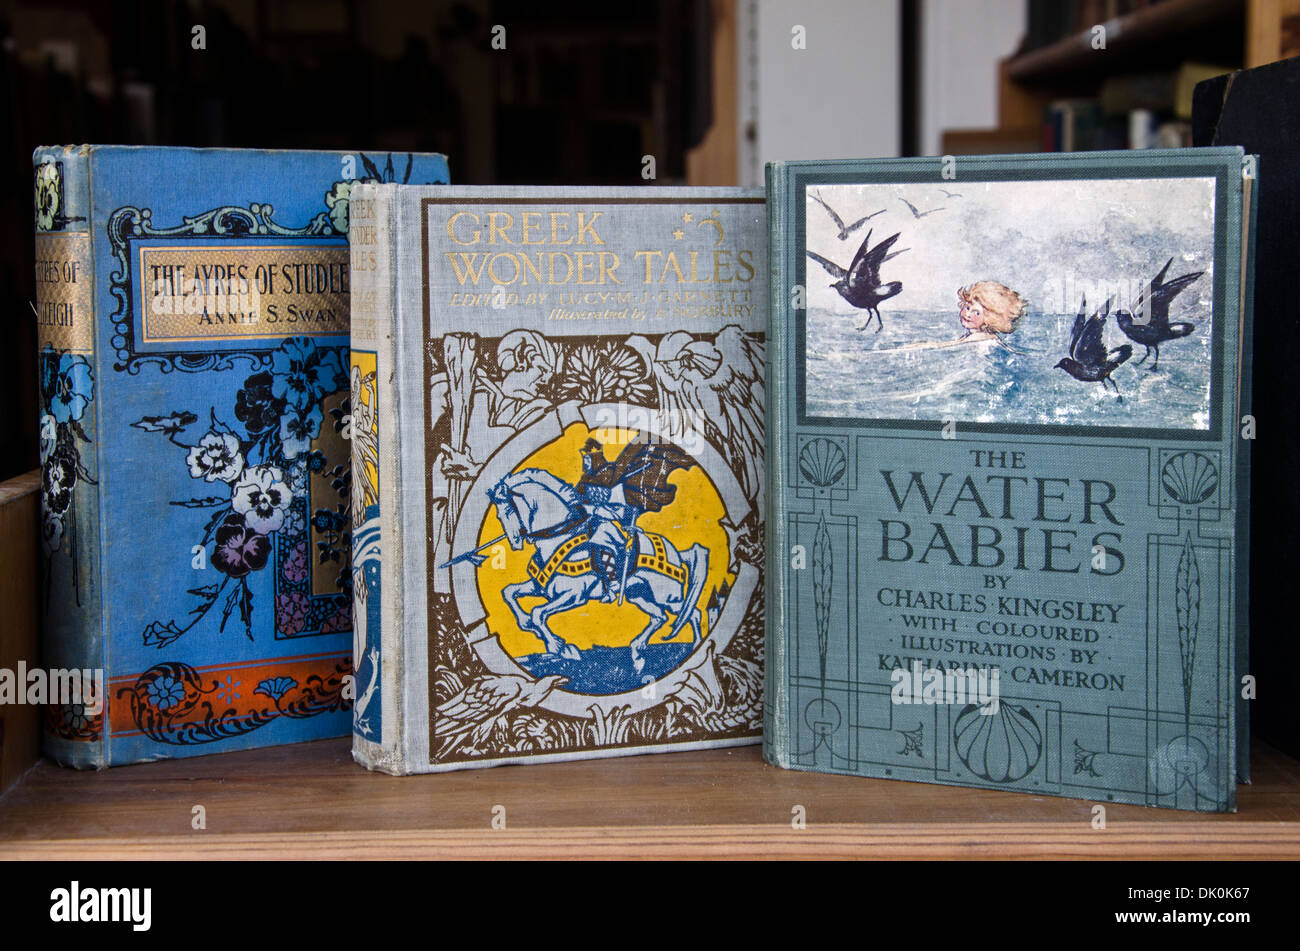 Vintage books for sale in the window of a secondhand bookshop, Edinburgh, Scotland. - Stock Image